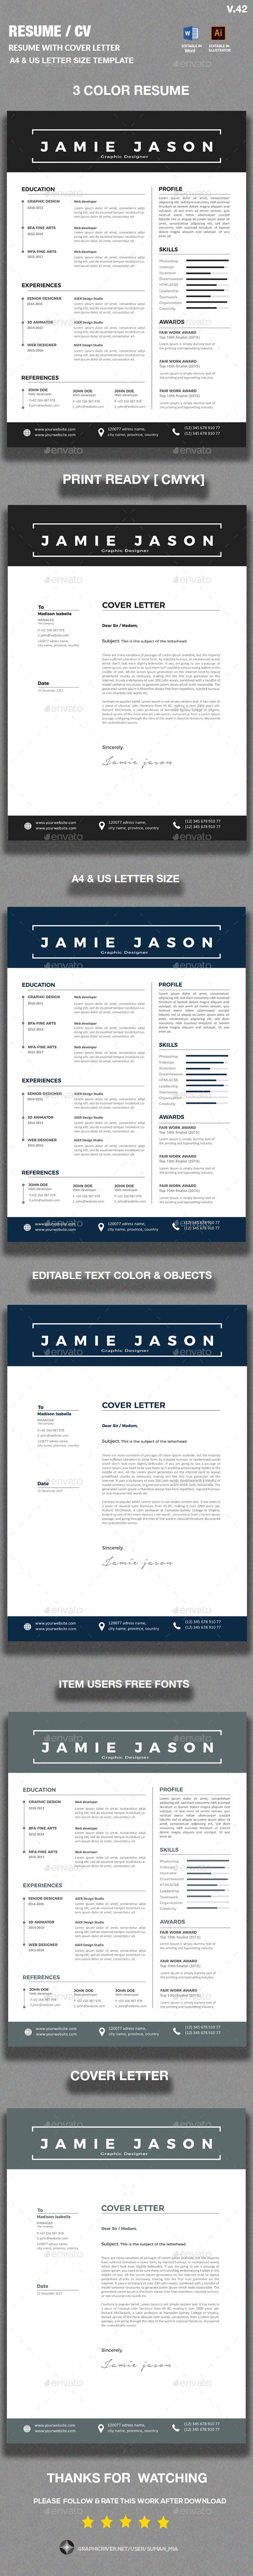 Resume Template Vector Eps Ai Illustrator Ms Word  Resume